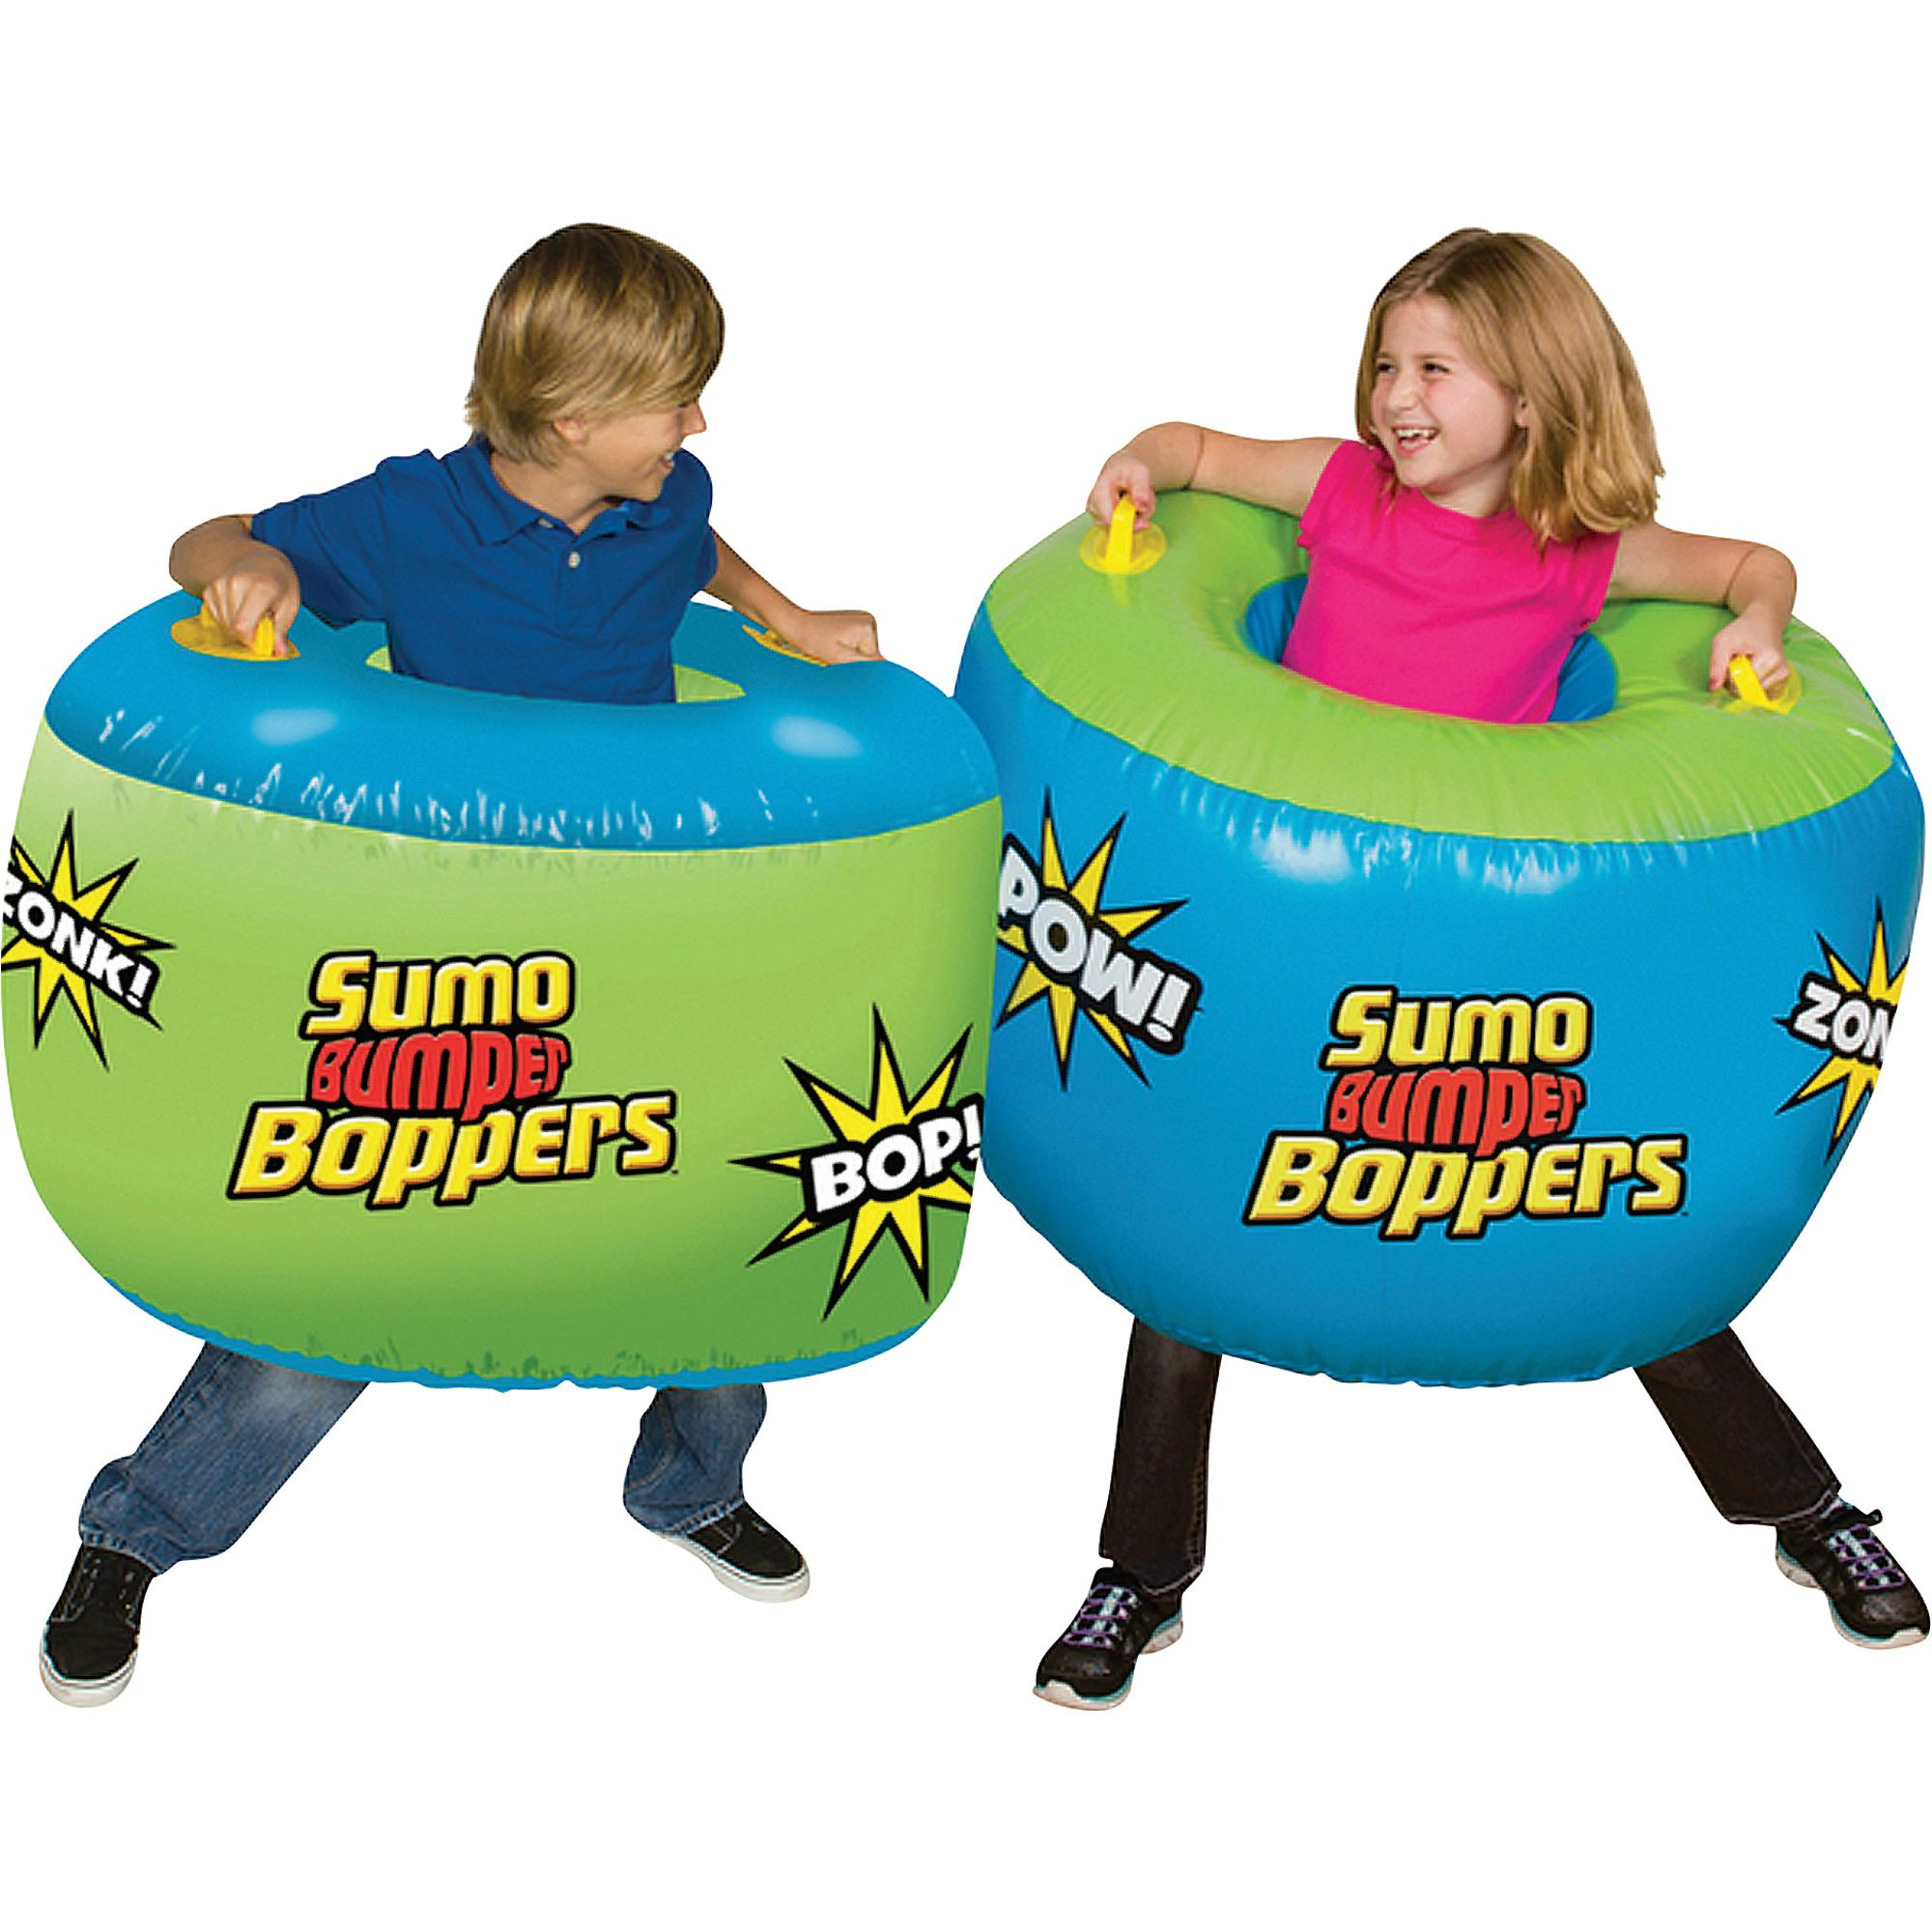 Sumo Bumper Bopper Bump Up Your Fun And I Thought